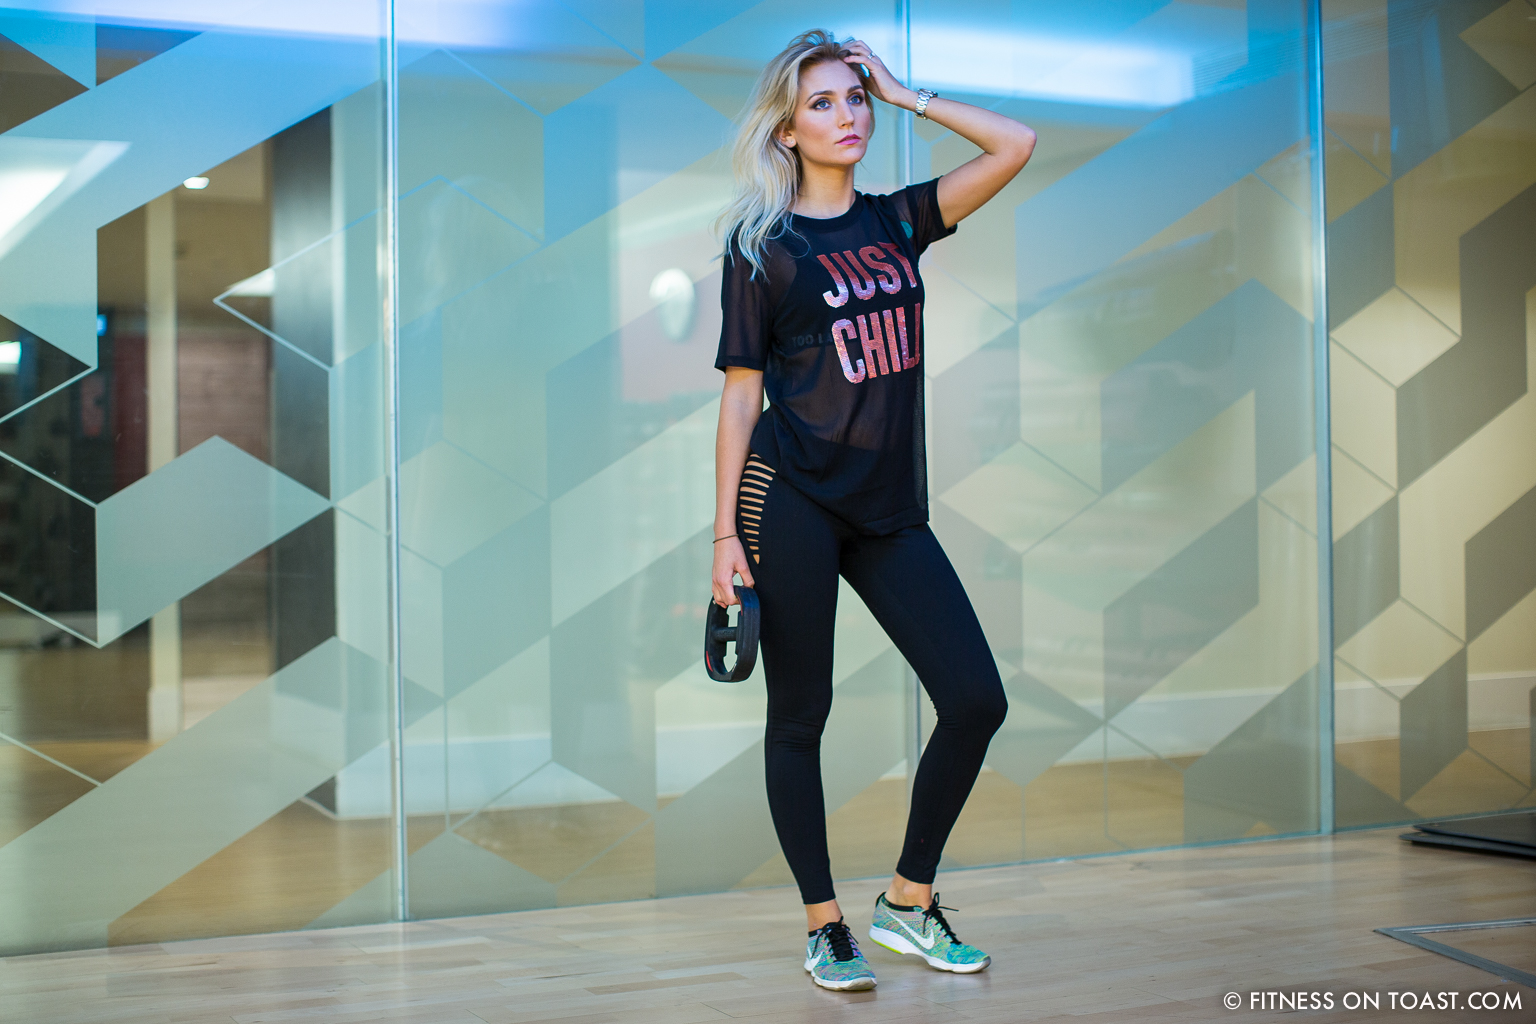 Fitness On Toast Faya Blog Girl Healthy Health Workout Arm Exercise Forever 21 Virgin Active Gym Training Fashion-22